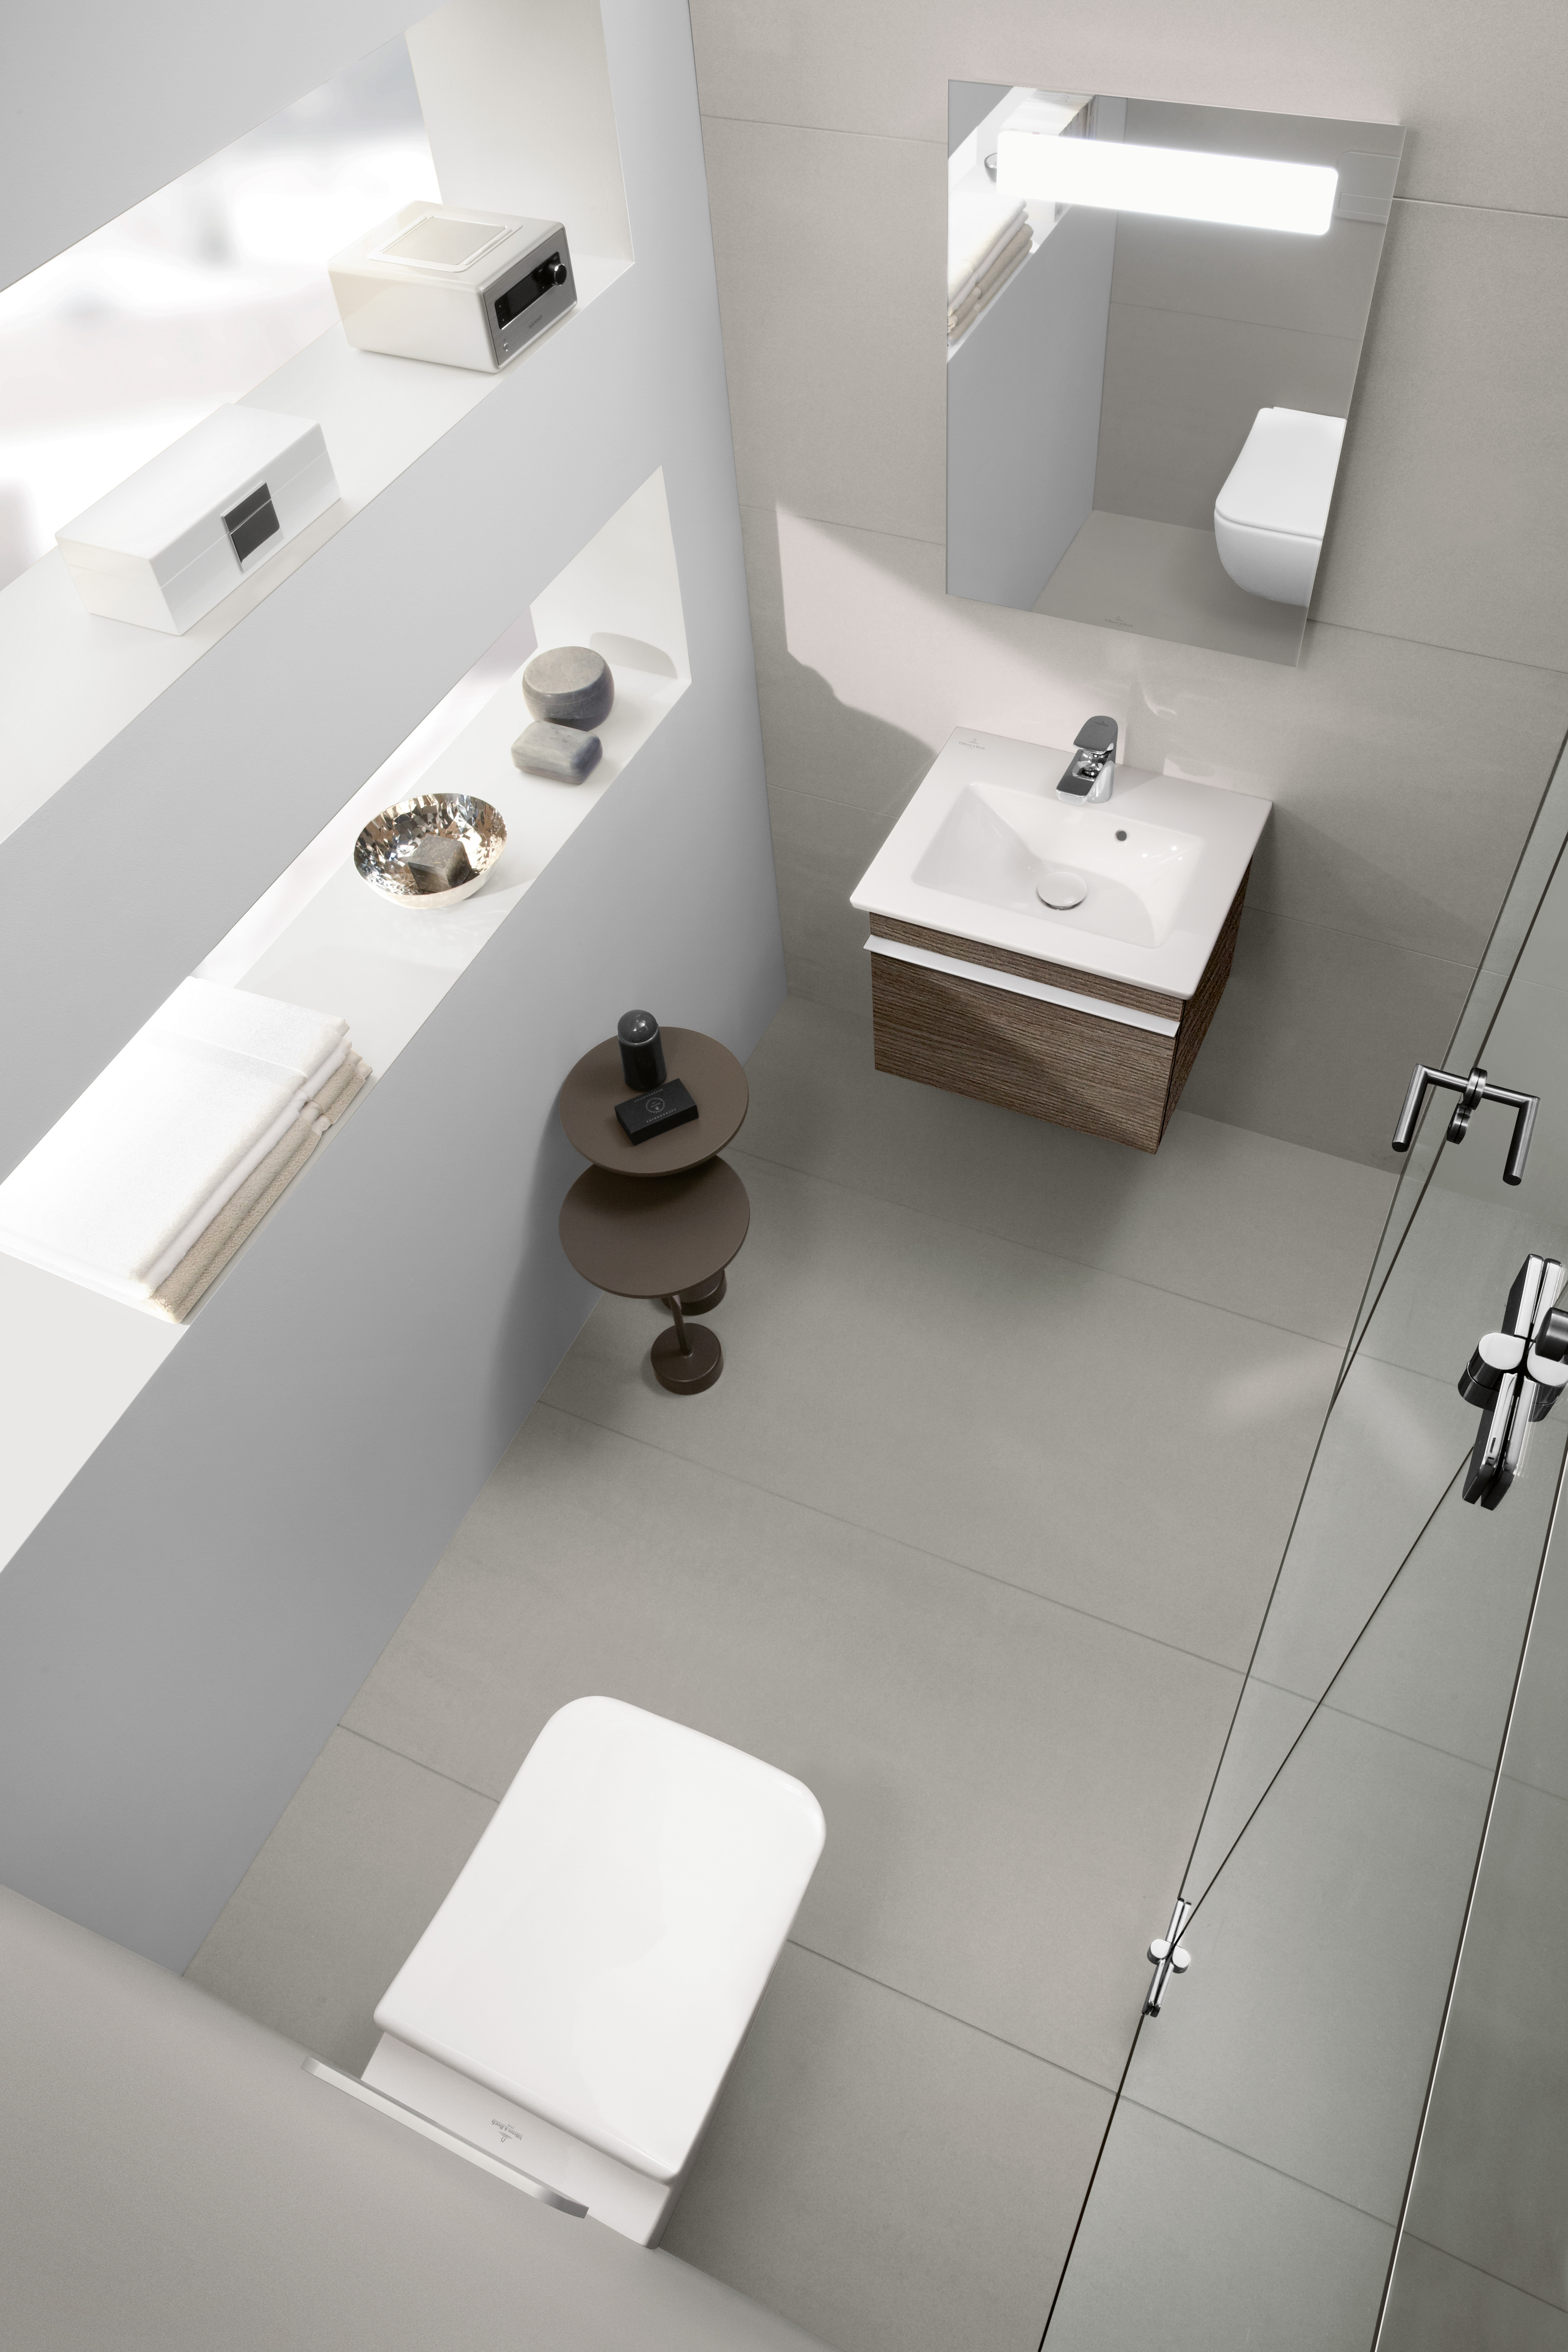 Venticello WC, Wall-mounted WC, Toilets, Washdown WC